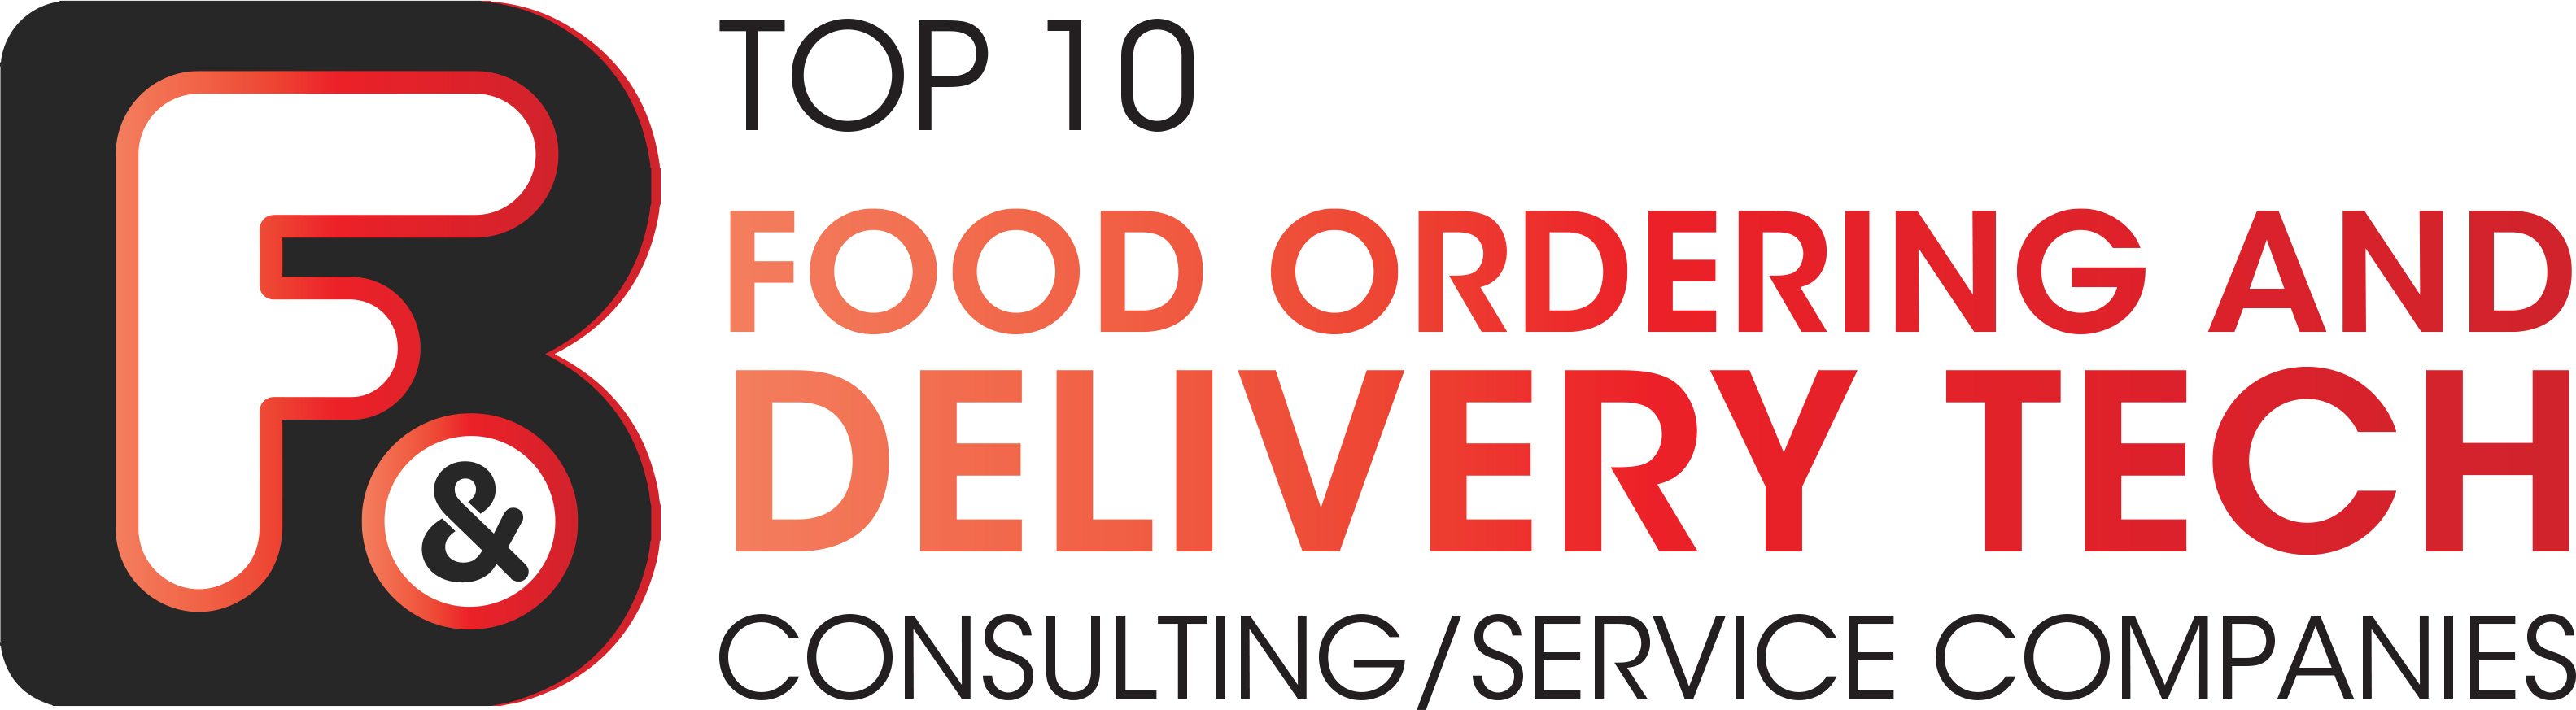 Top 10 Food Ordering and Delivery Tech Consulting/Service Companies - 2019